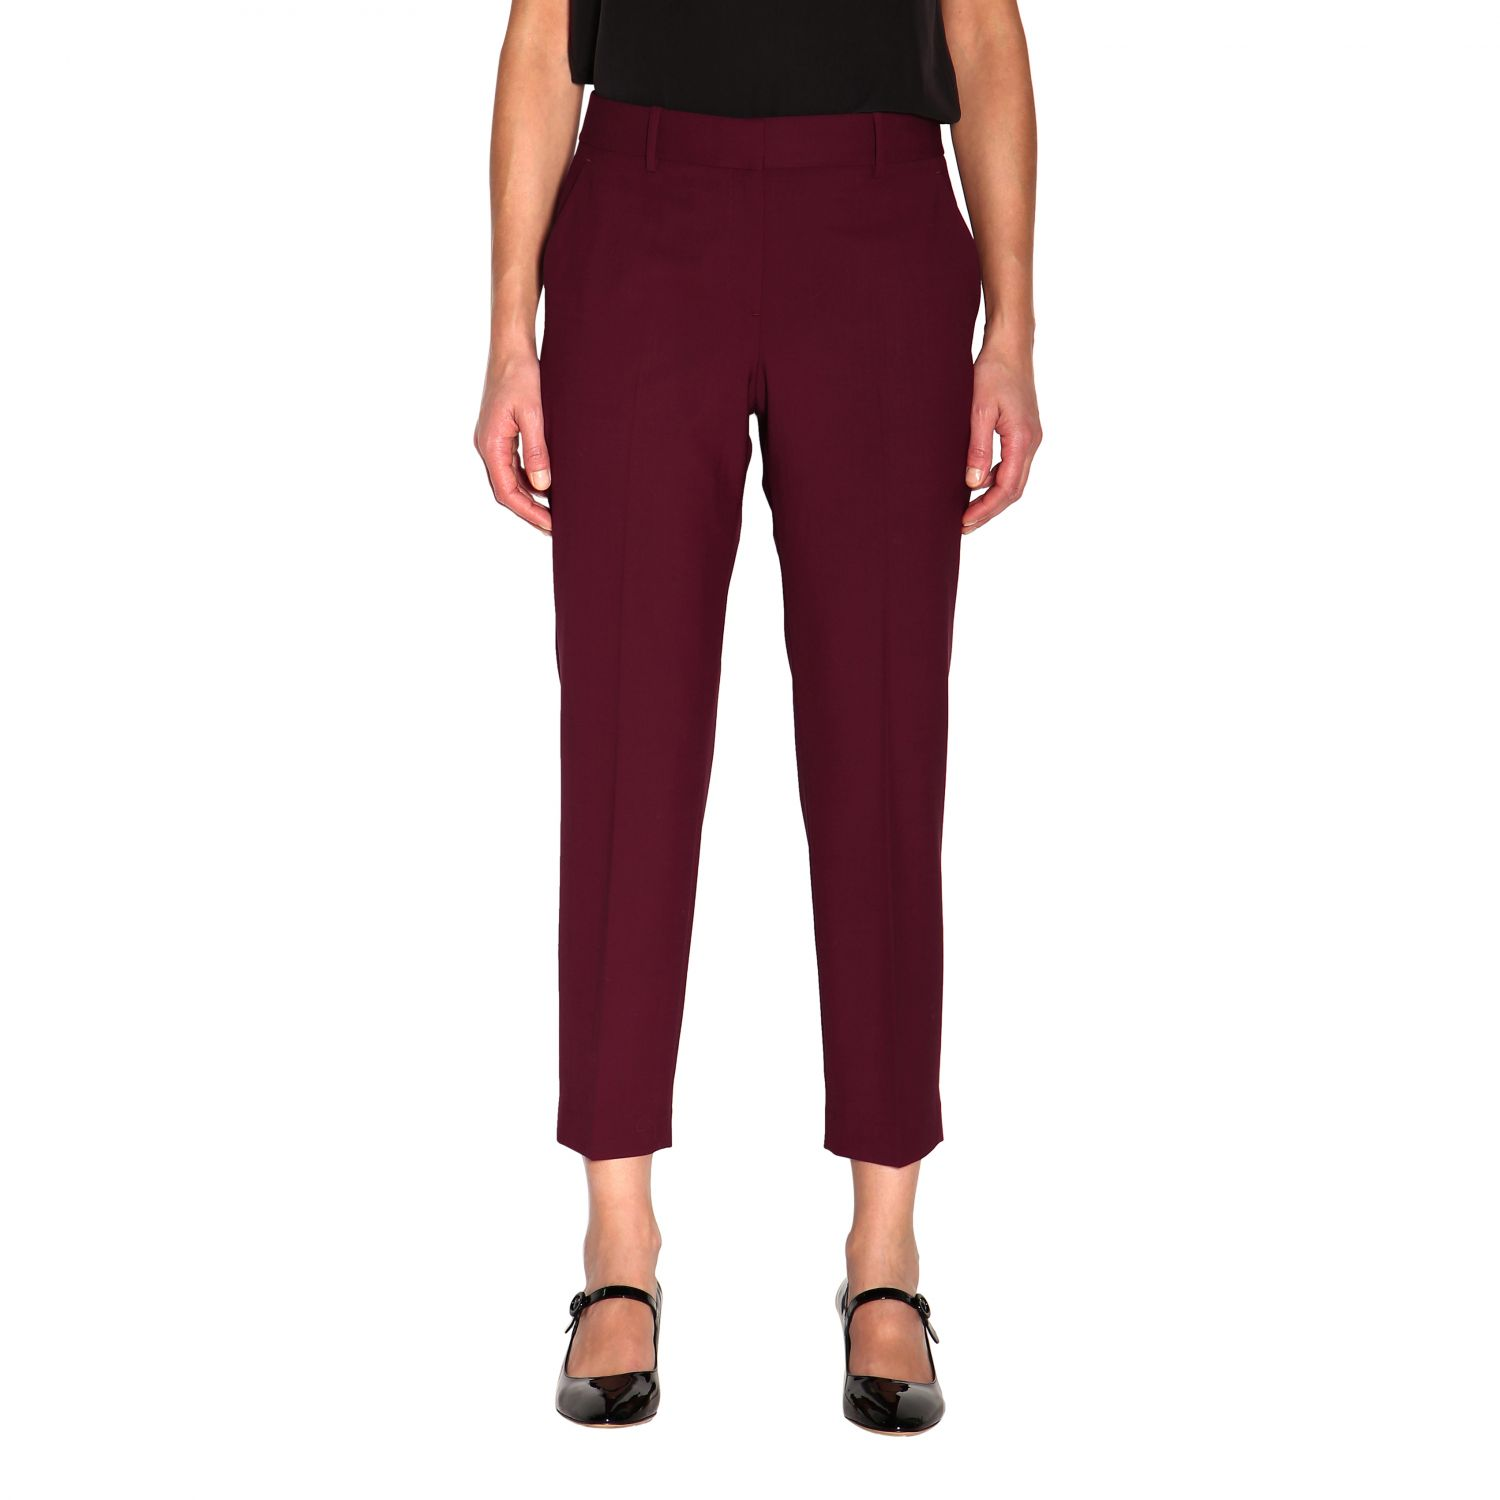 Trousers women Theory burgundy 1